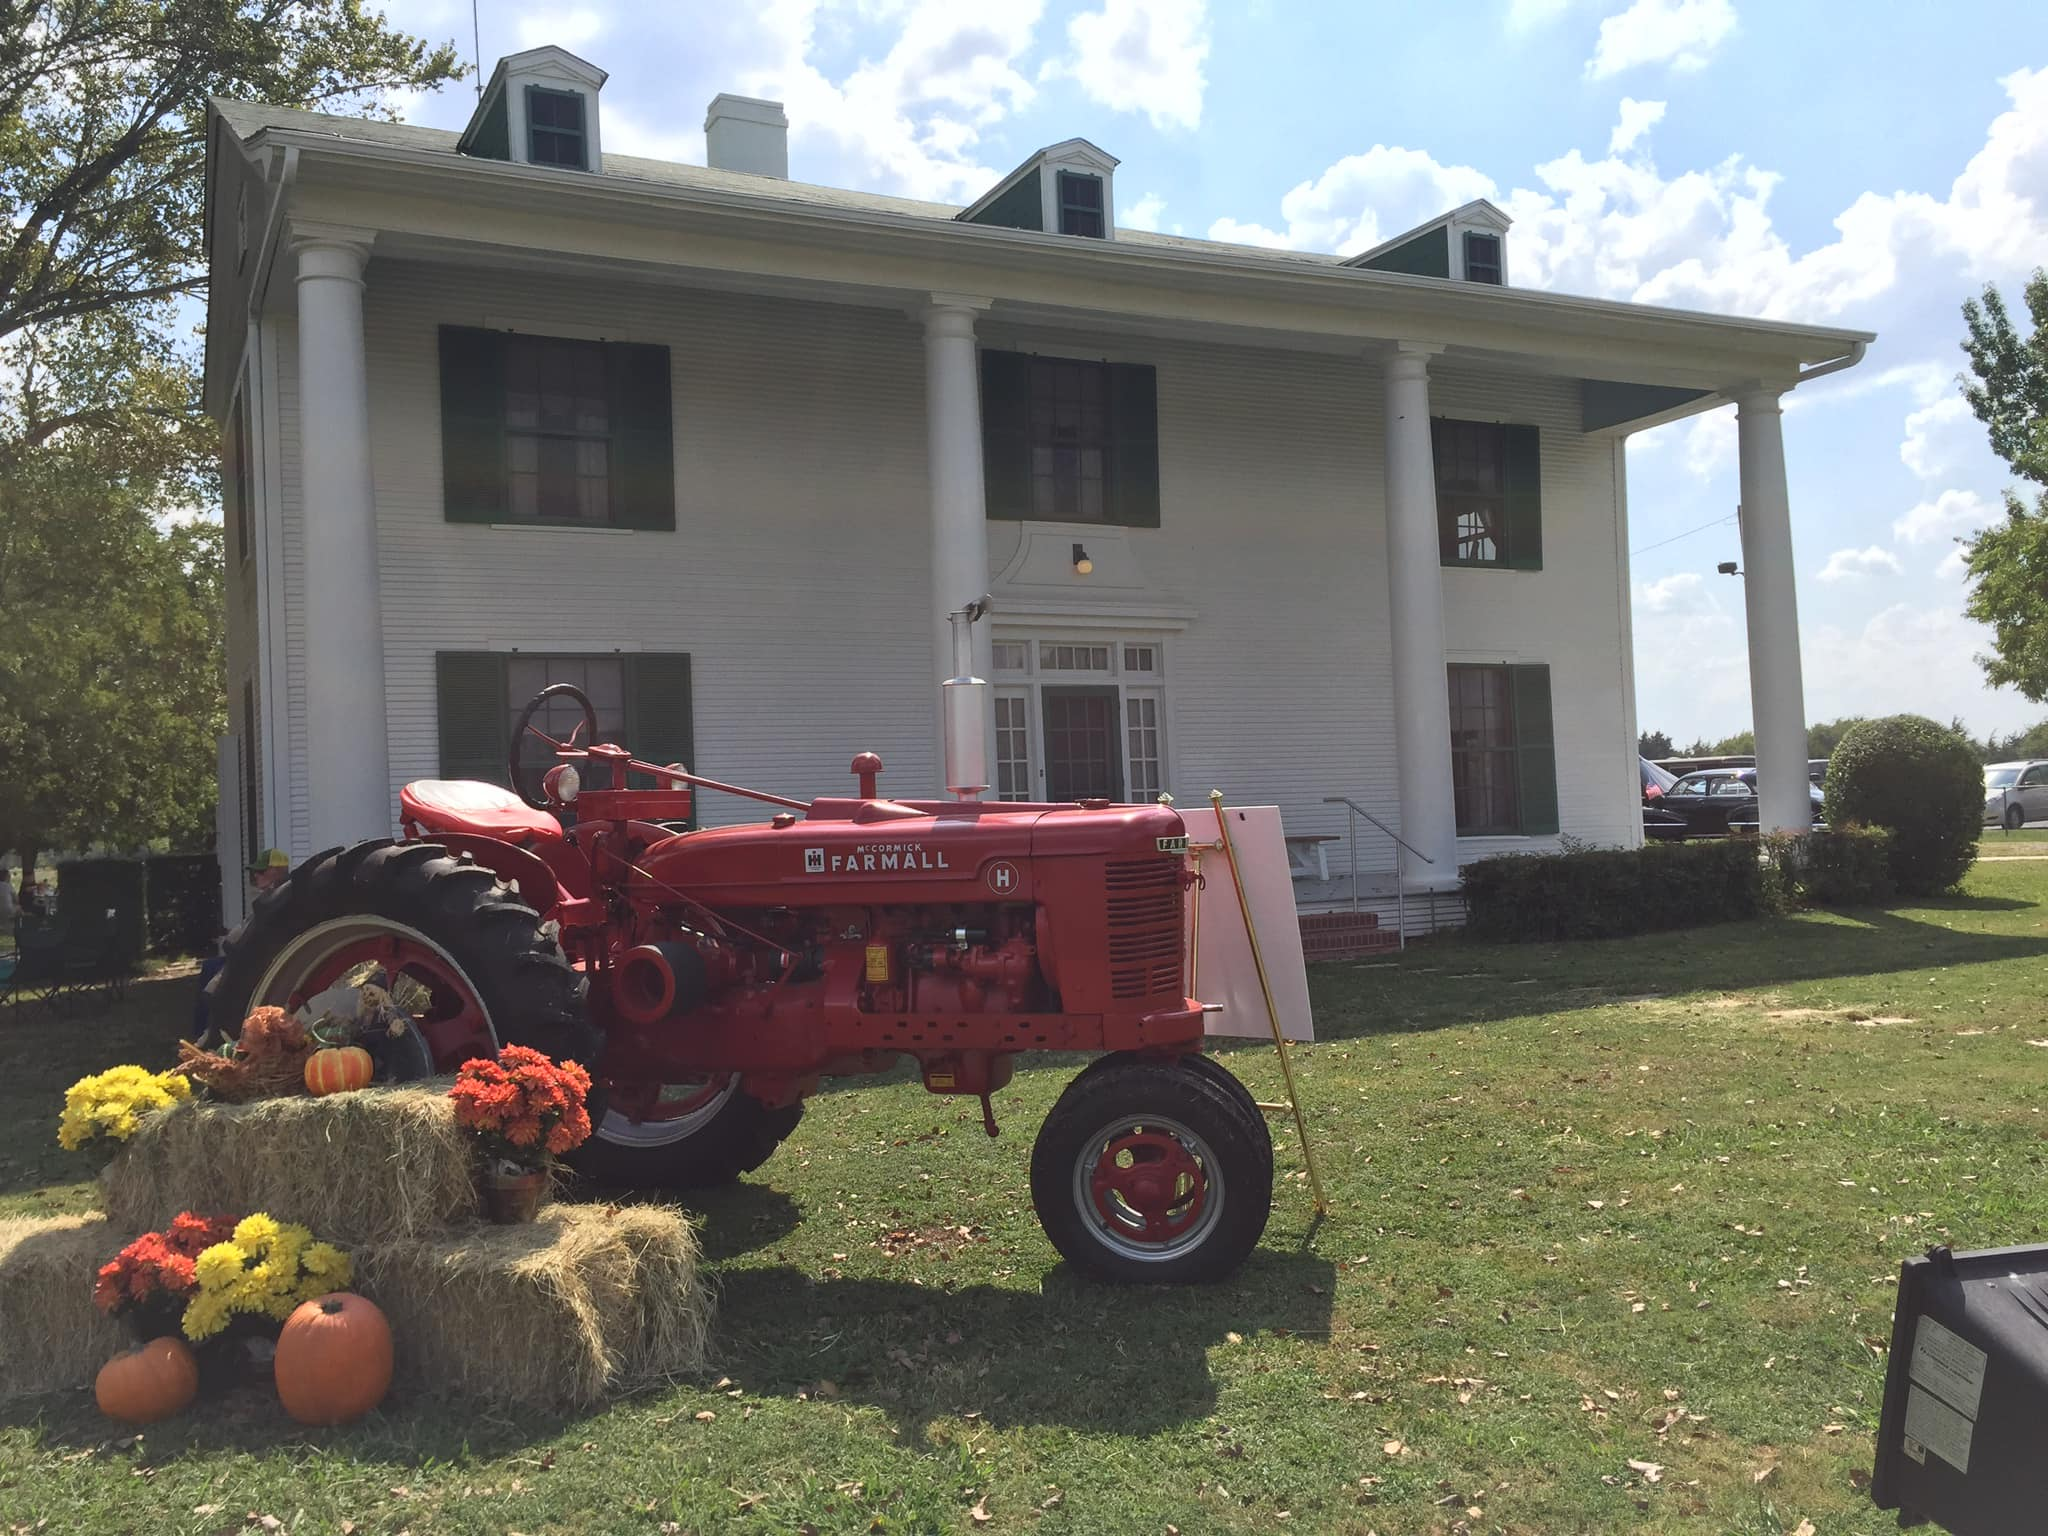 Farming Heritage Day at Sam Rayburn House